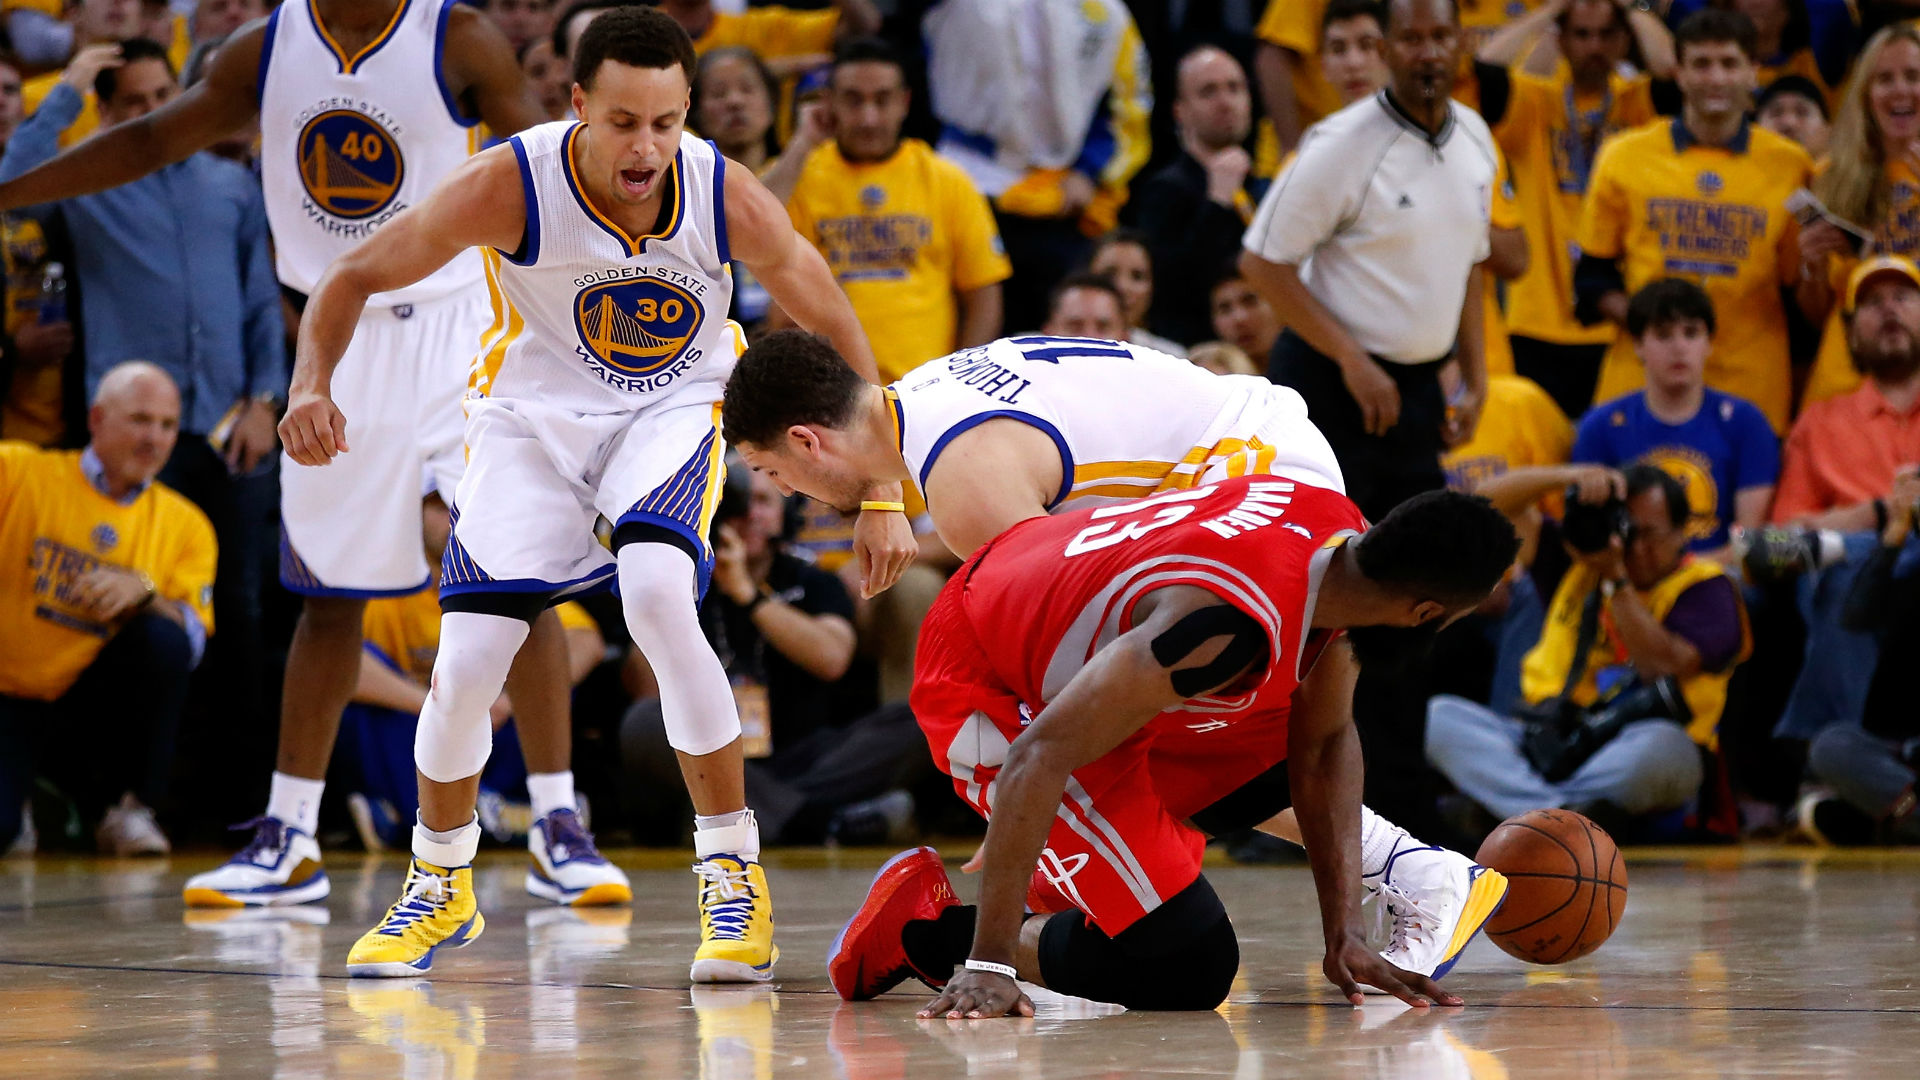 Western Conference finals: Stephen Curry's Warriors outduel James Harden, Rockets in Game 2